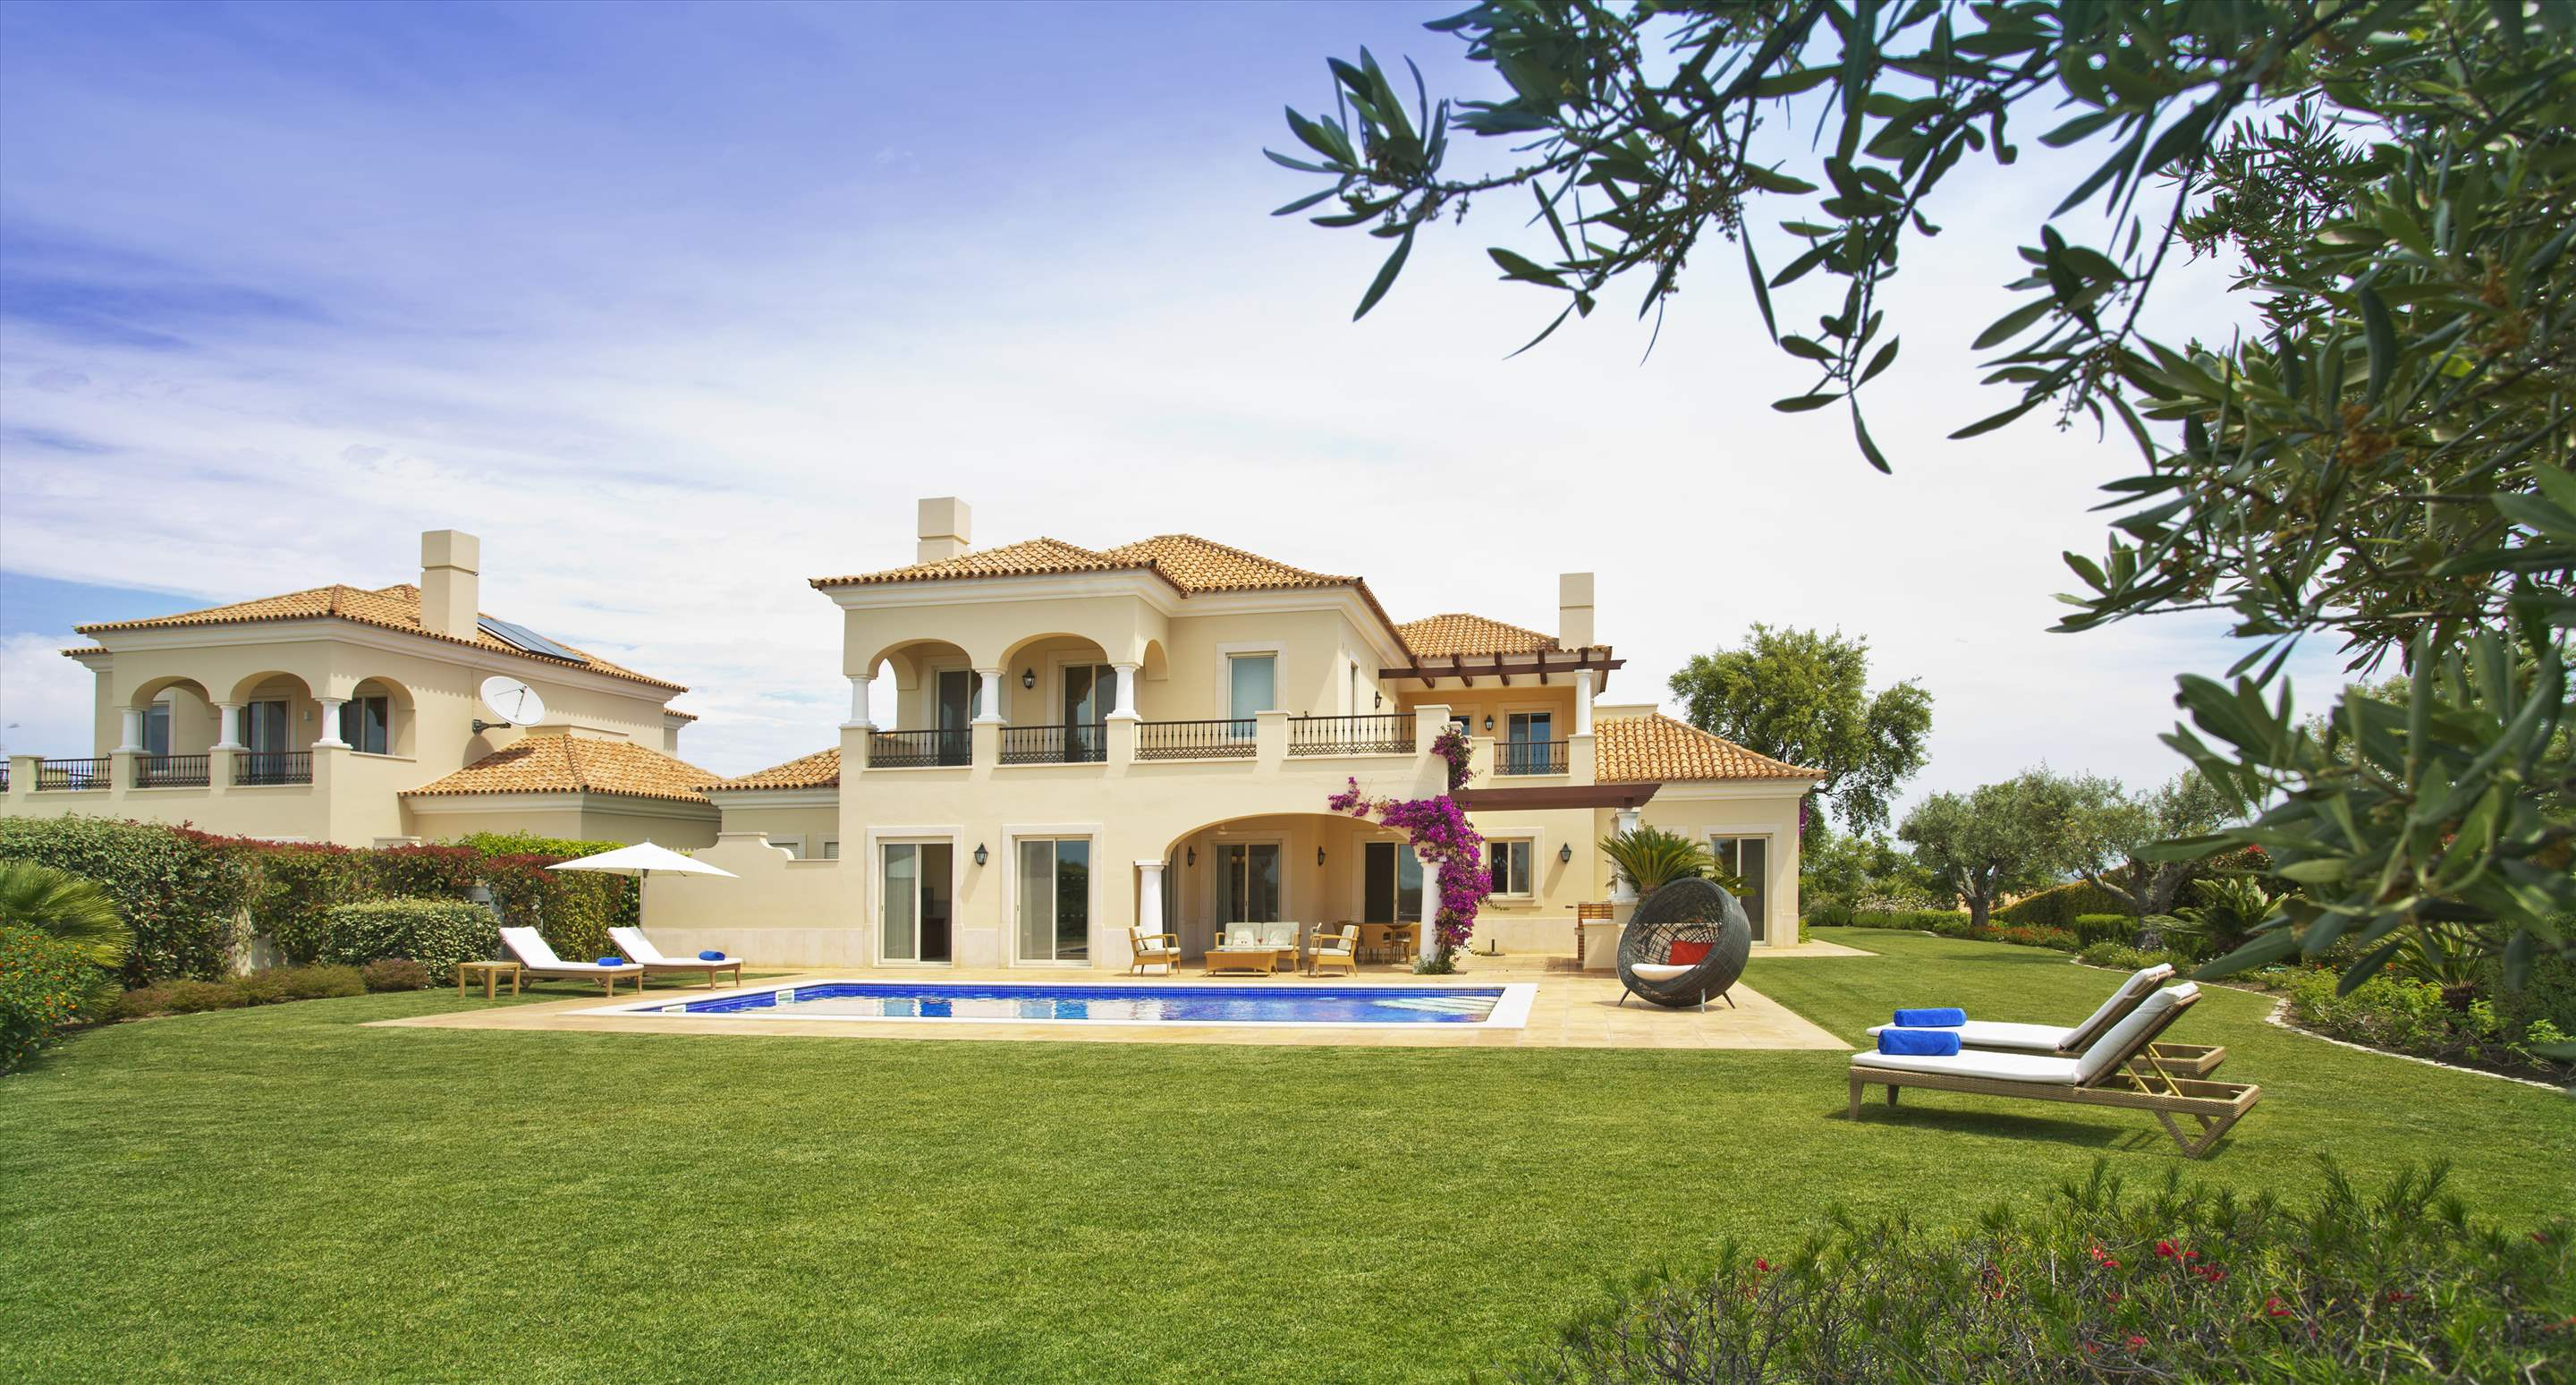 Monte Rei Three Bedroom Villa with Private Pool, 3 bedroom villa in Monte Rei Country Club, Algarve Photo #1